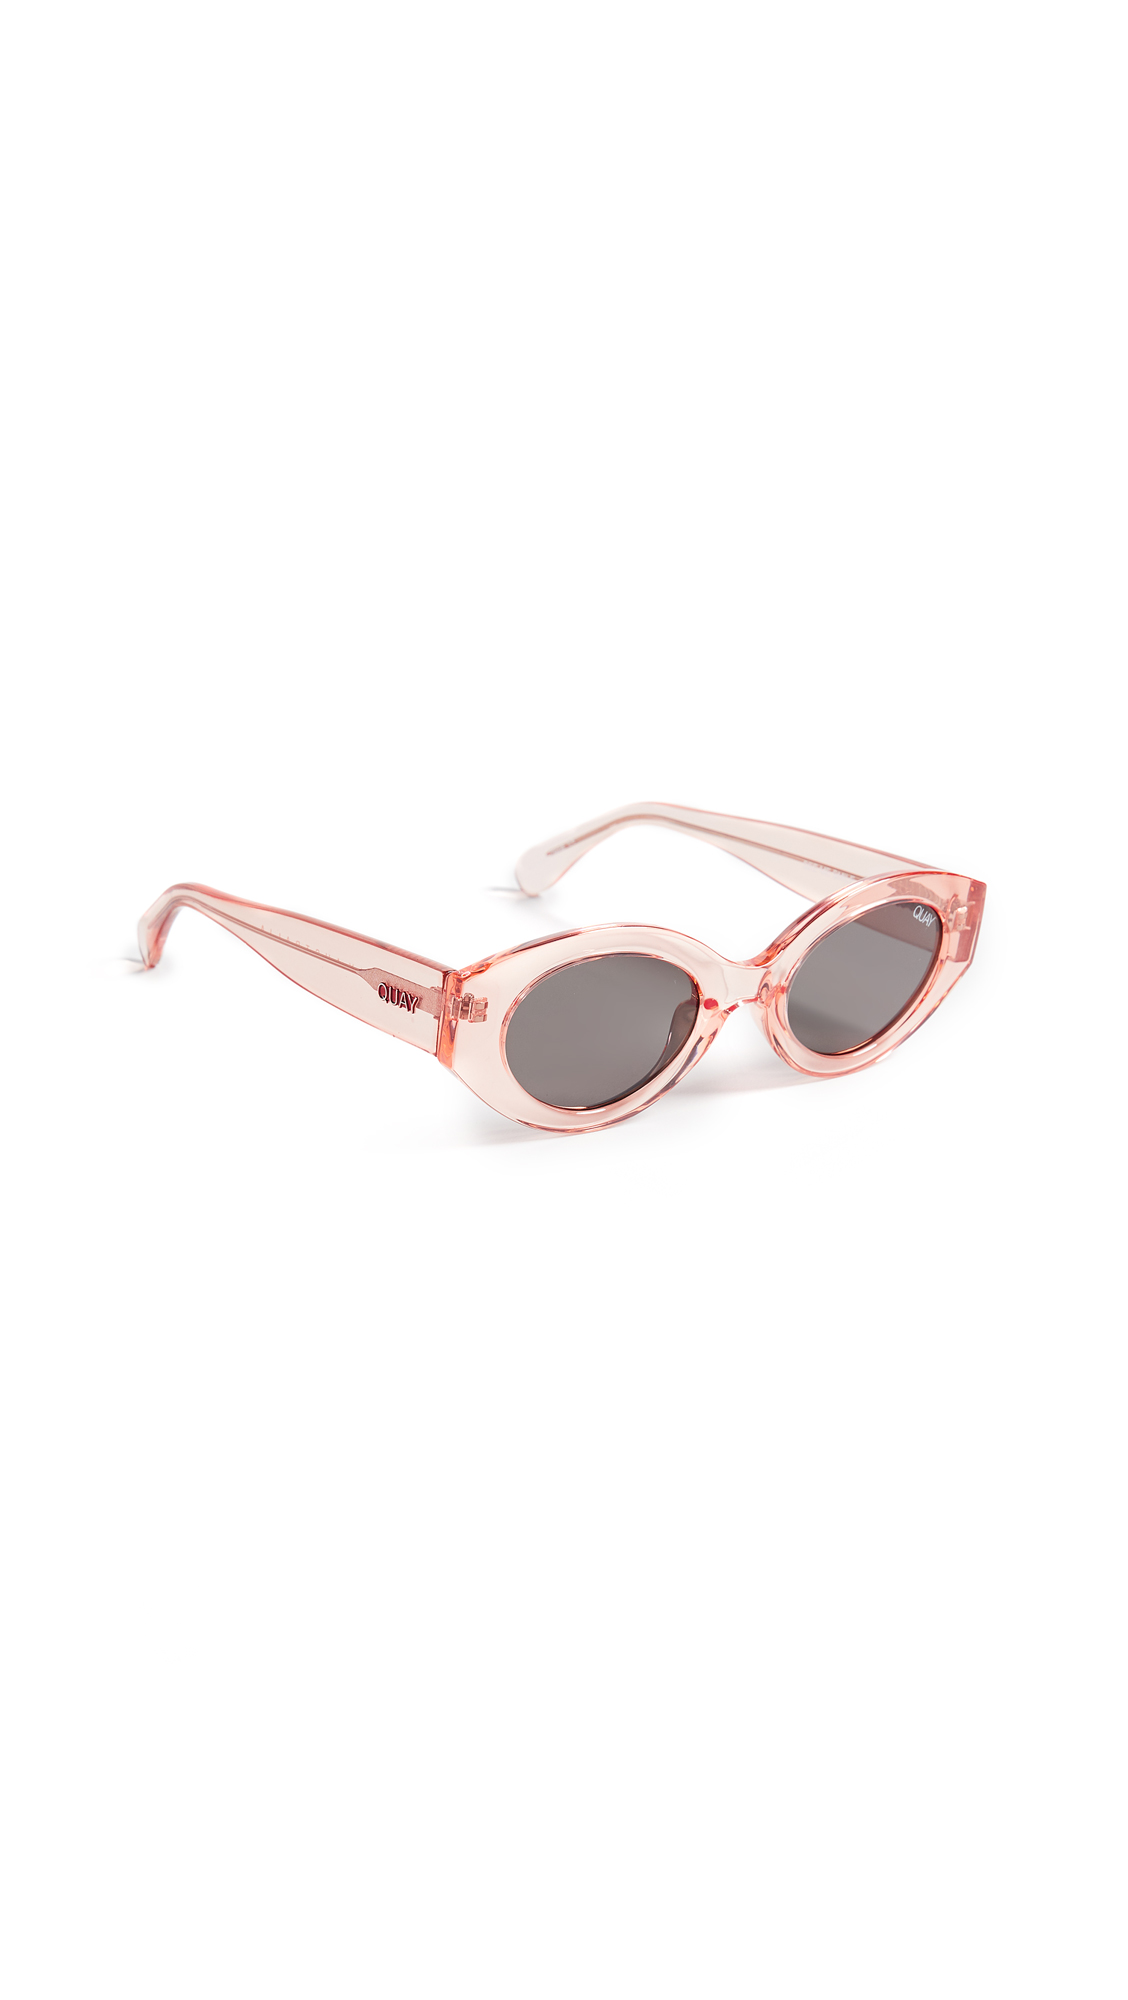 See Me Smile 50Mm Cat Eye Sunglasses - Rose/ Smoke